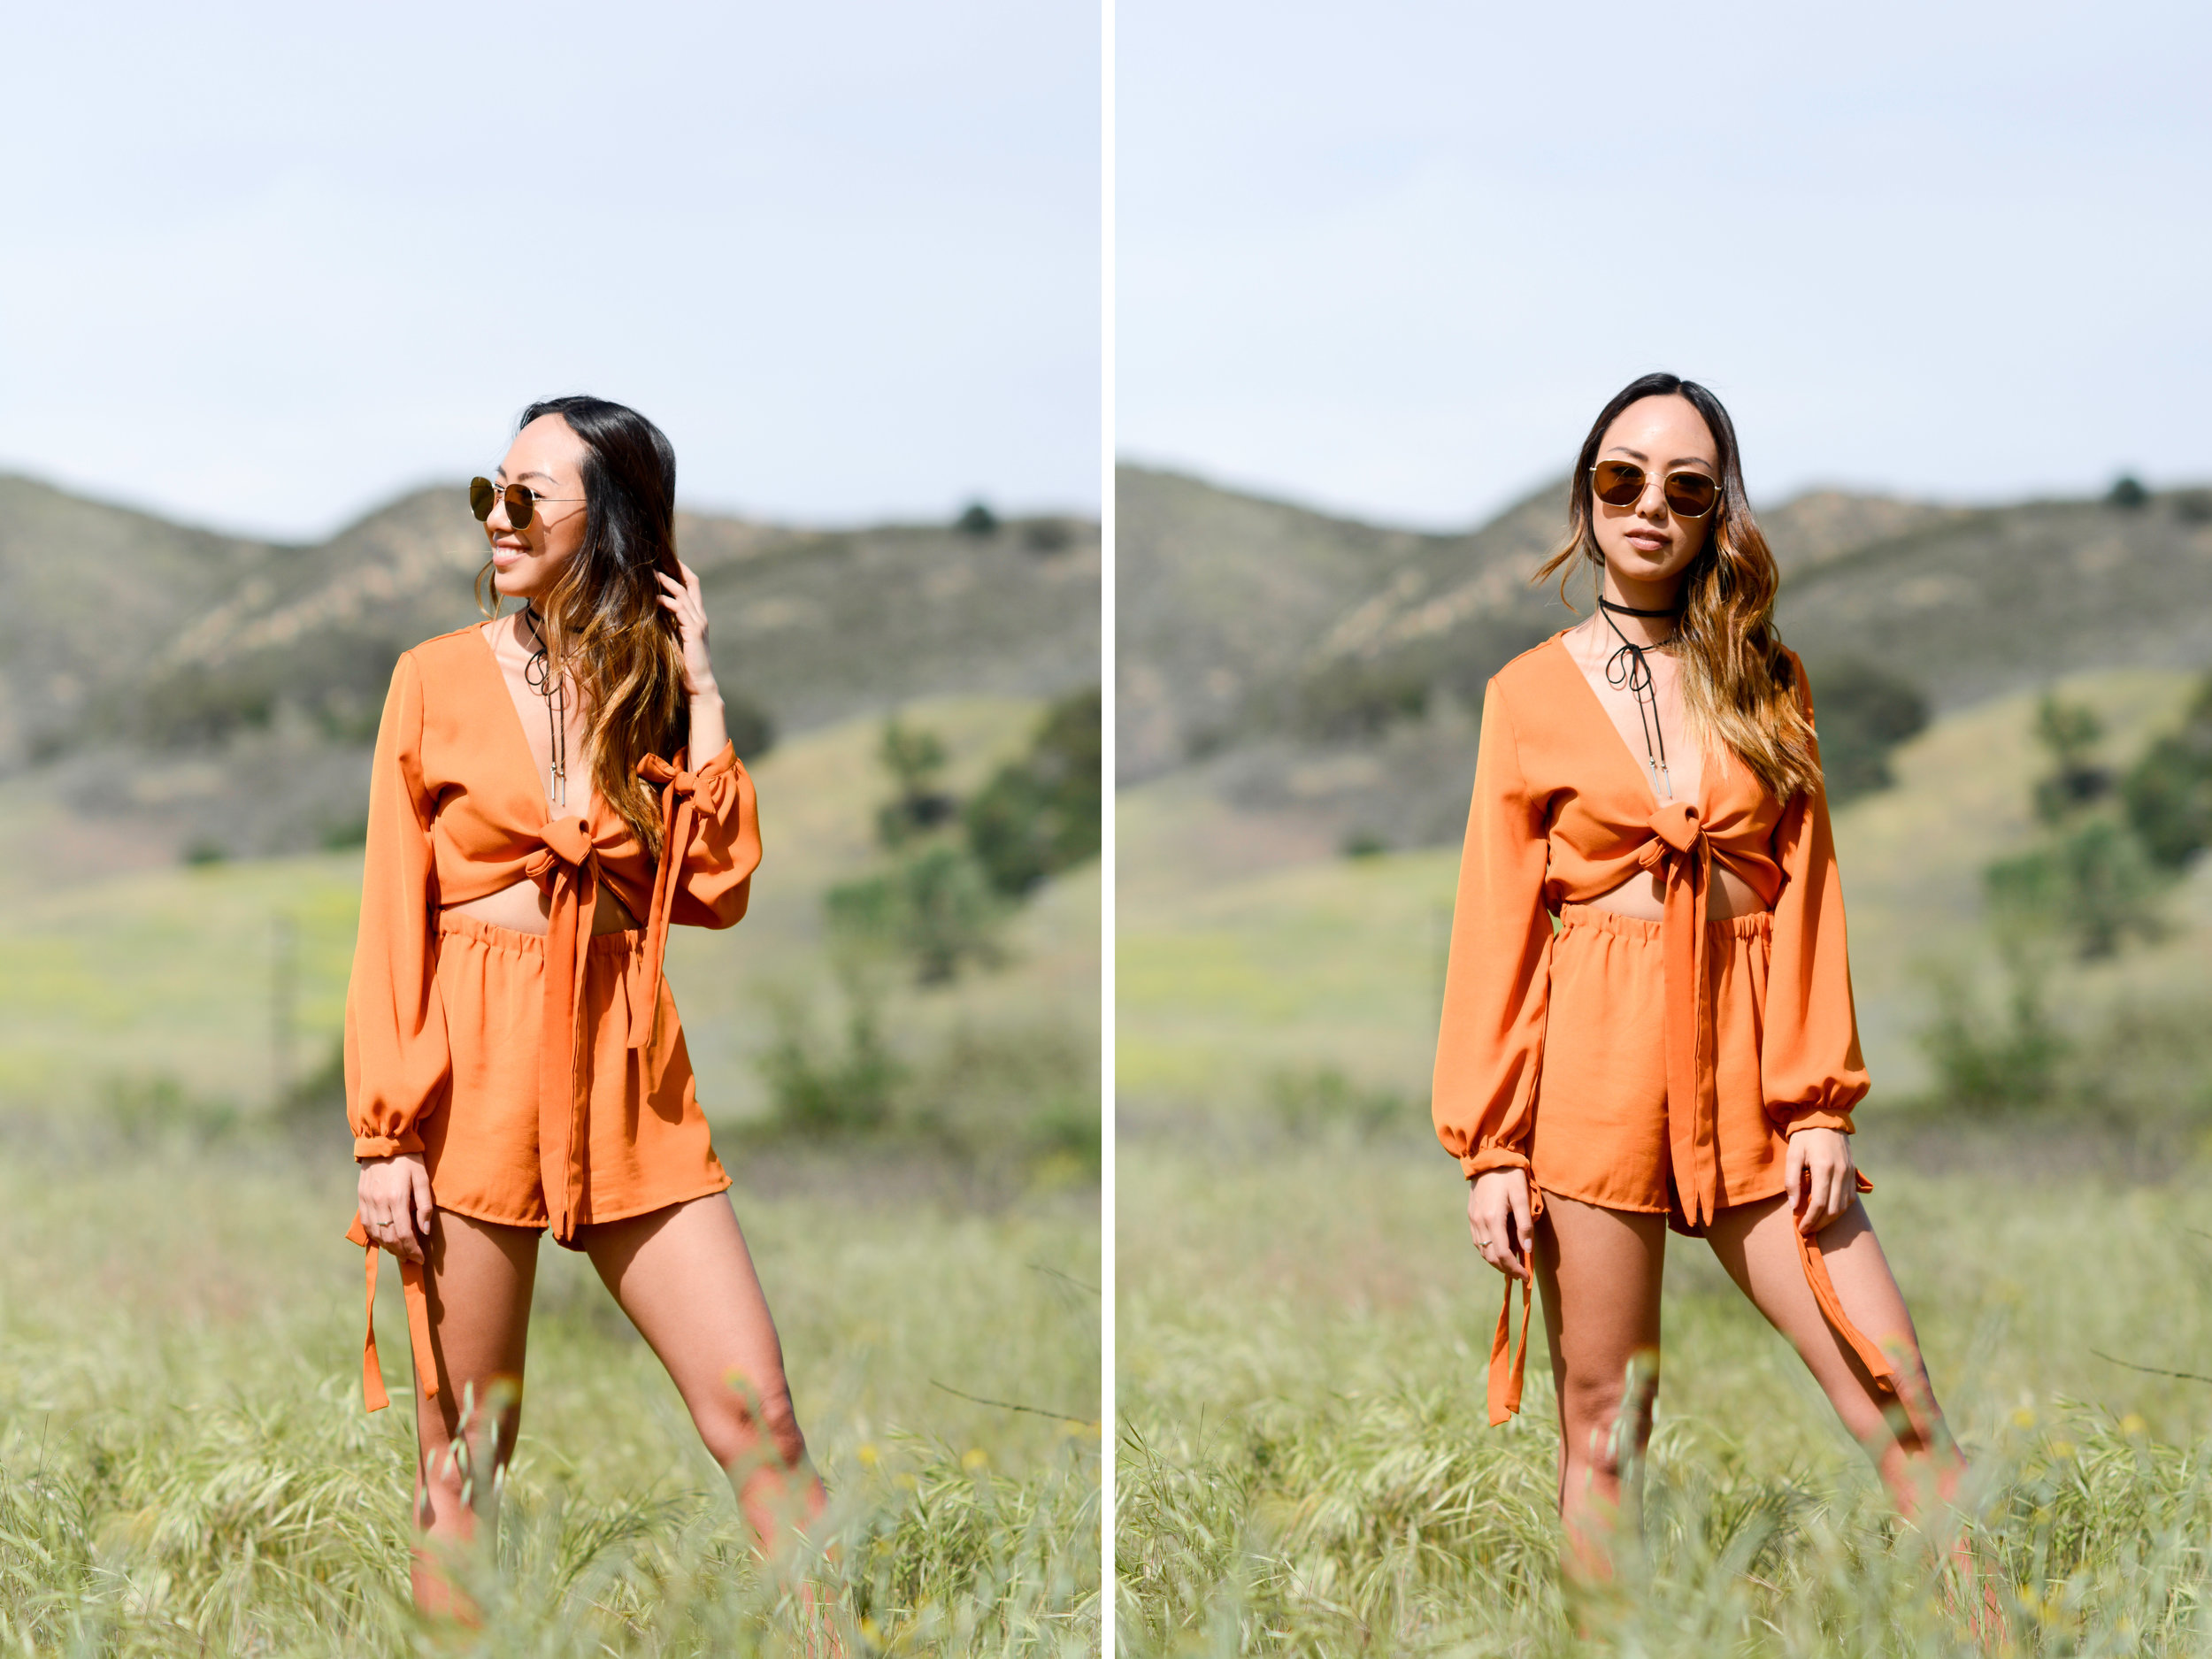 I have been digging earthy tones lately and have been wanting to add some orange and yellows to my closet. When I saw this romper it was love at first sight 😍 My favorite thing about this piece is the tie-cutout on the front. It makes it super flirty and gives the illusion that it's a two piece! To complete my outfit I wore a hat and booties, two must haves for any boho look.